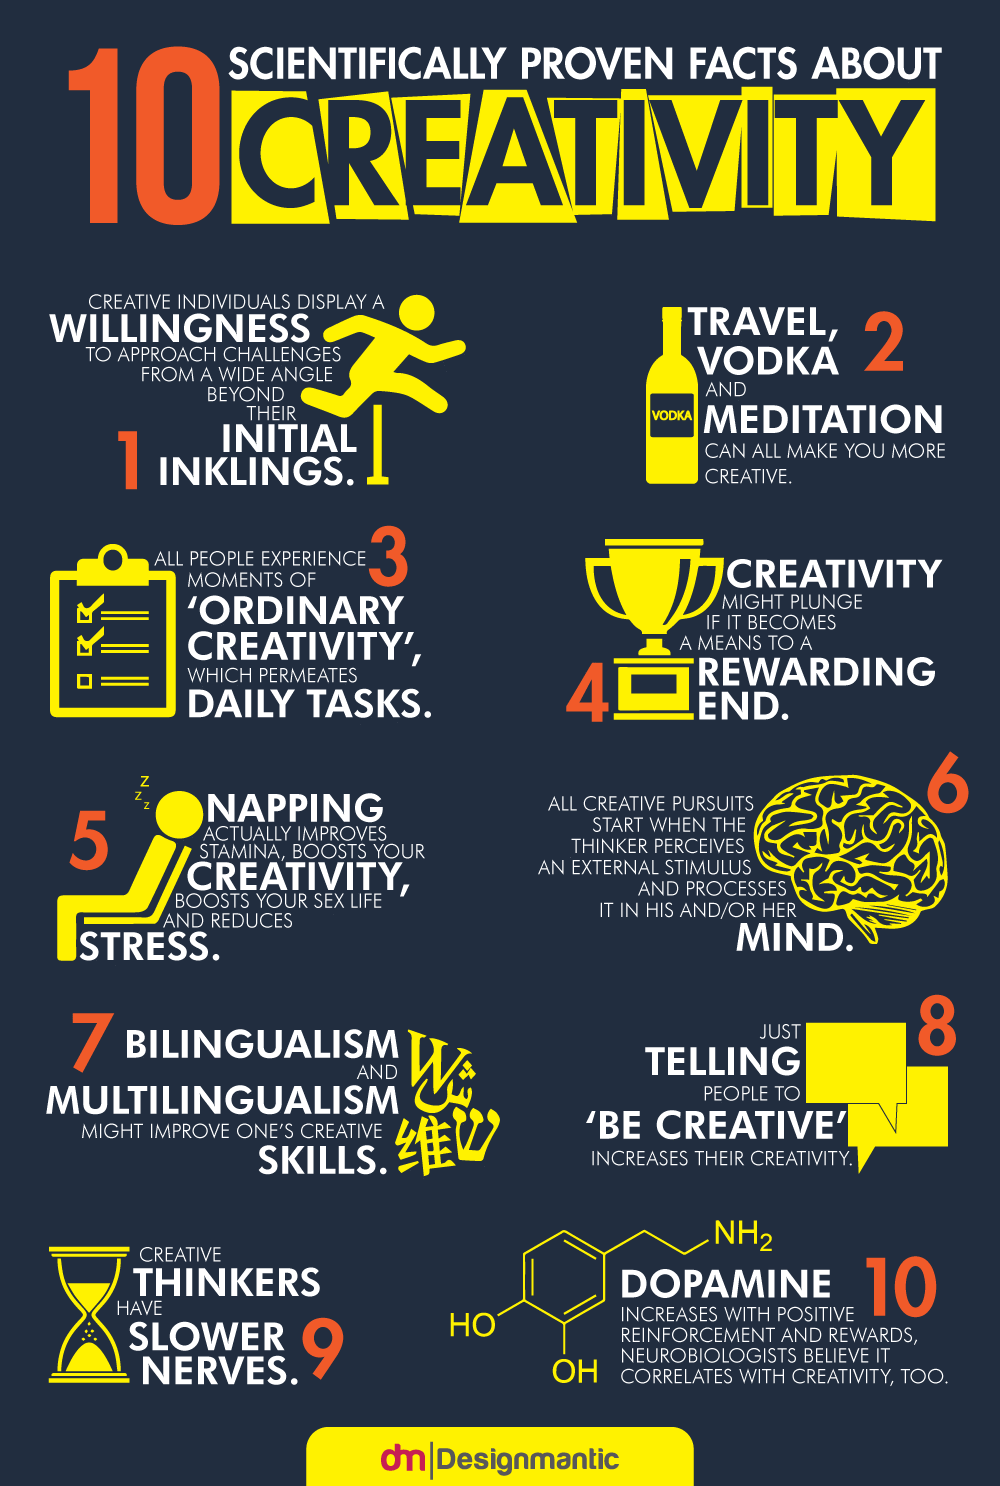 Infographic about 10 scientifically proven facts about creative thinking